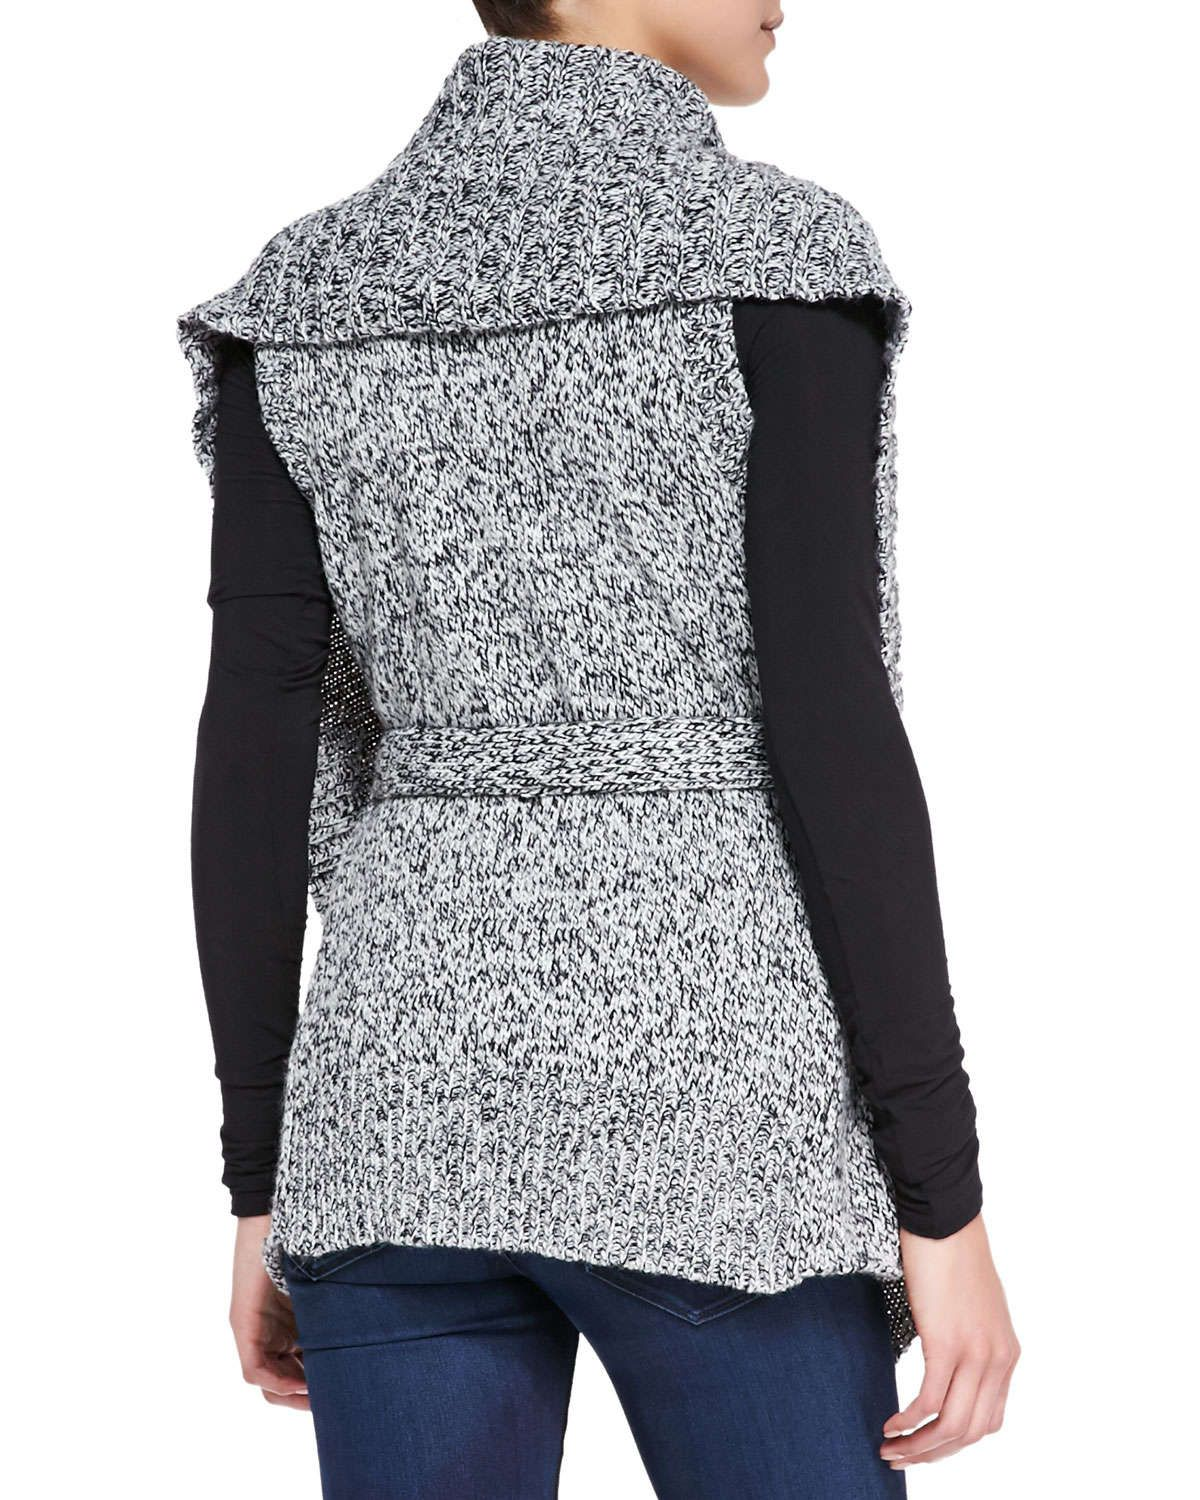 Wraparound Cable-Knit Sweater Vest, Dark Gray | Products ...